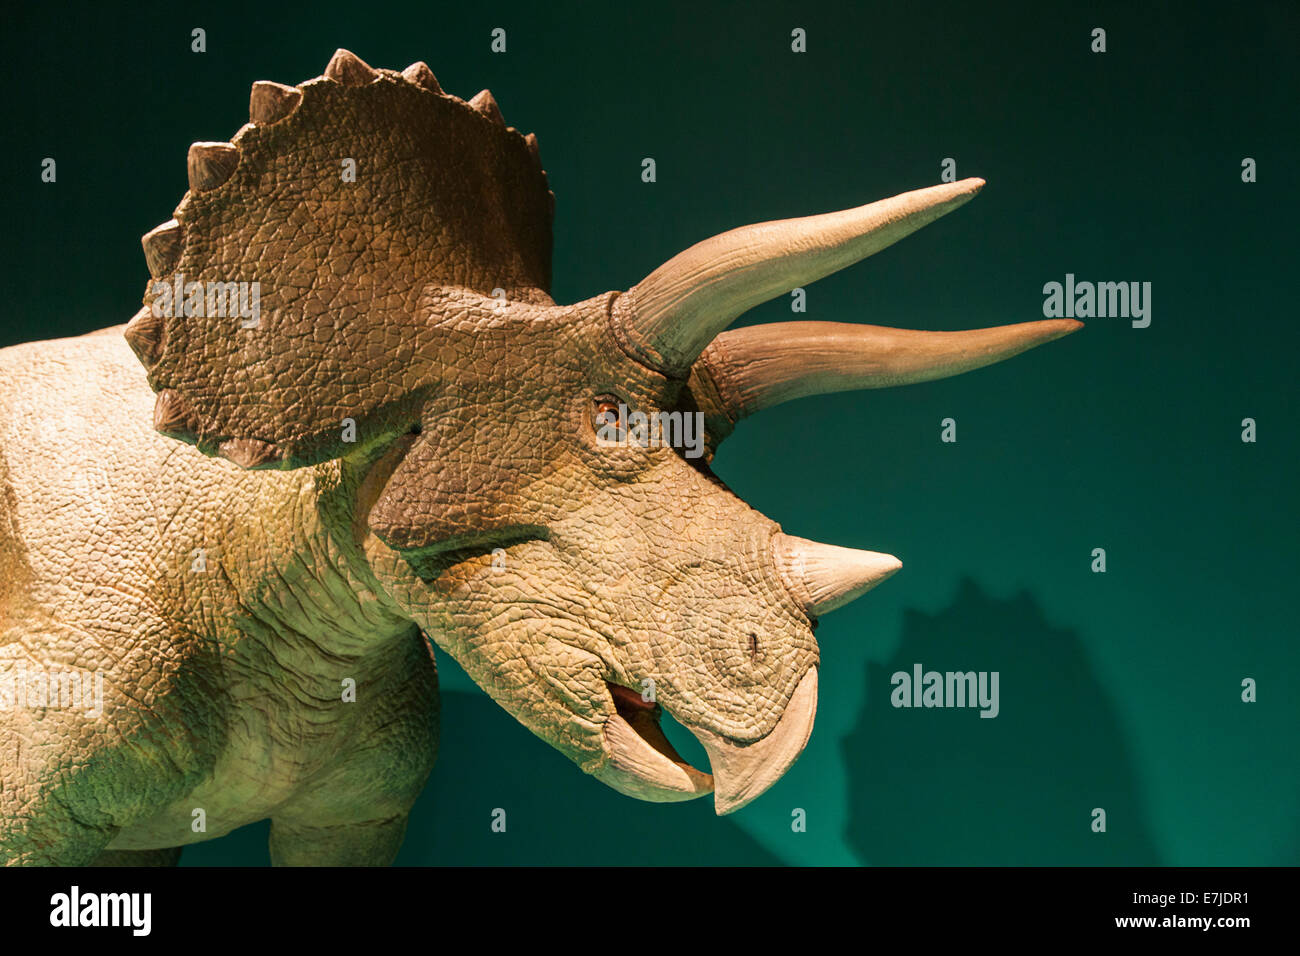 L'Asie, Chine, Dinosaure, dinosaures, Triceratops, musée Banque D'Images